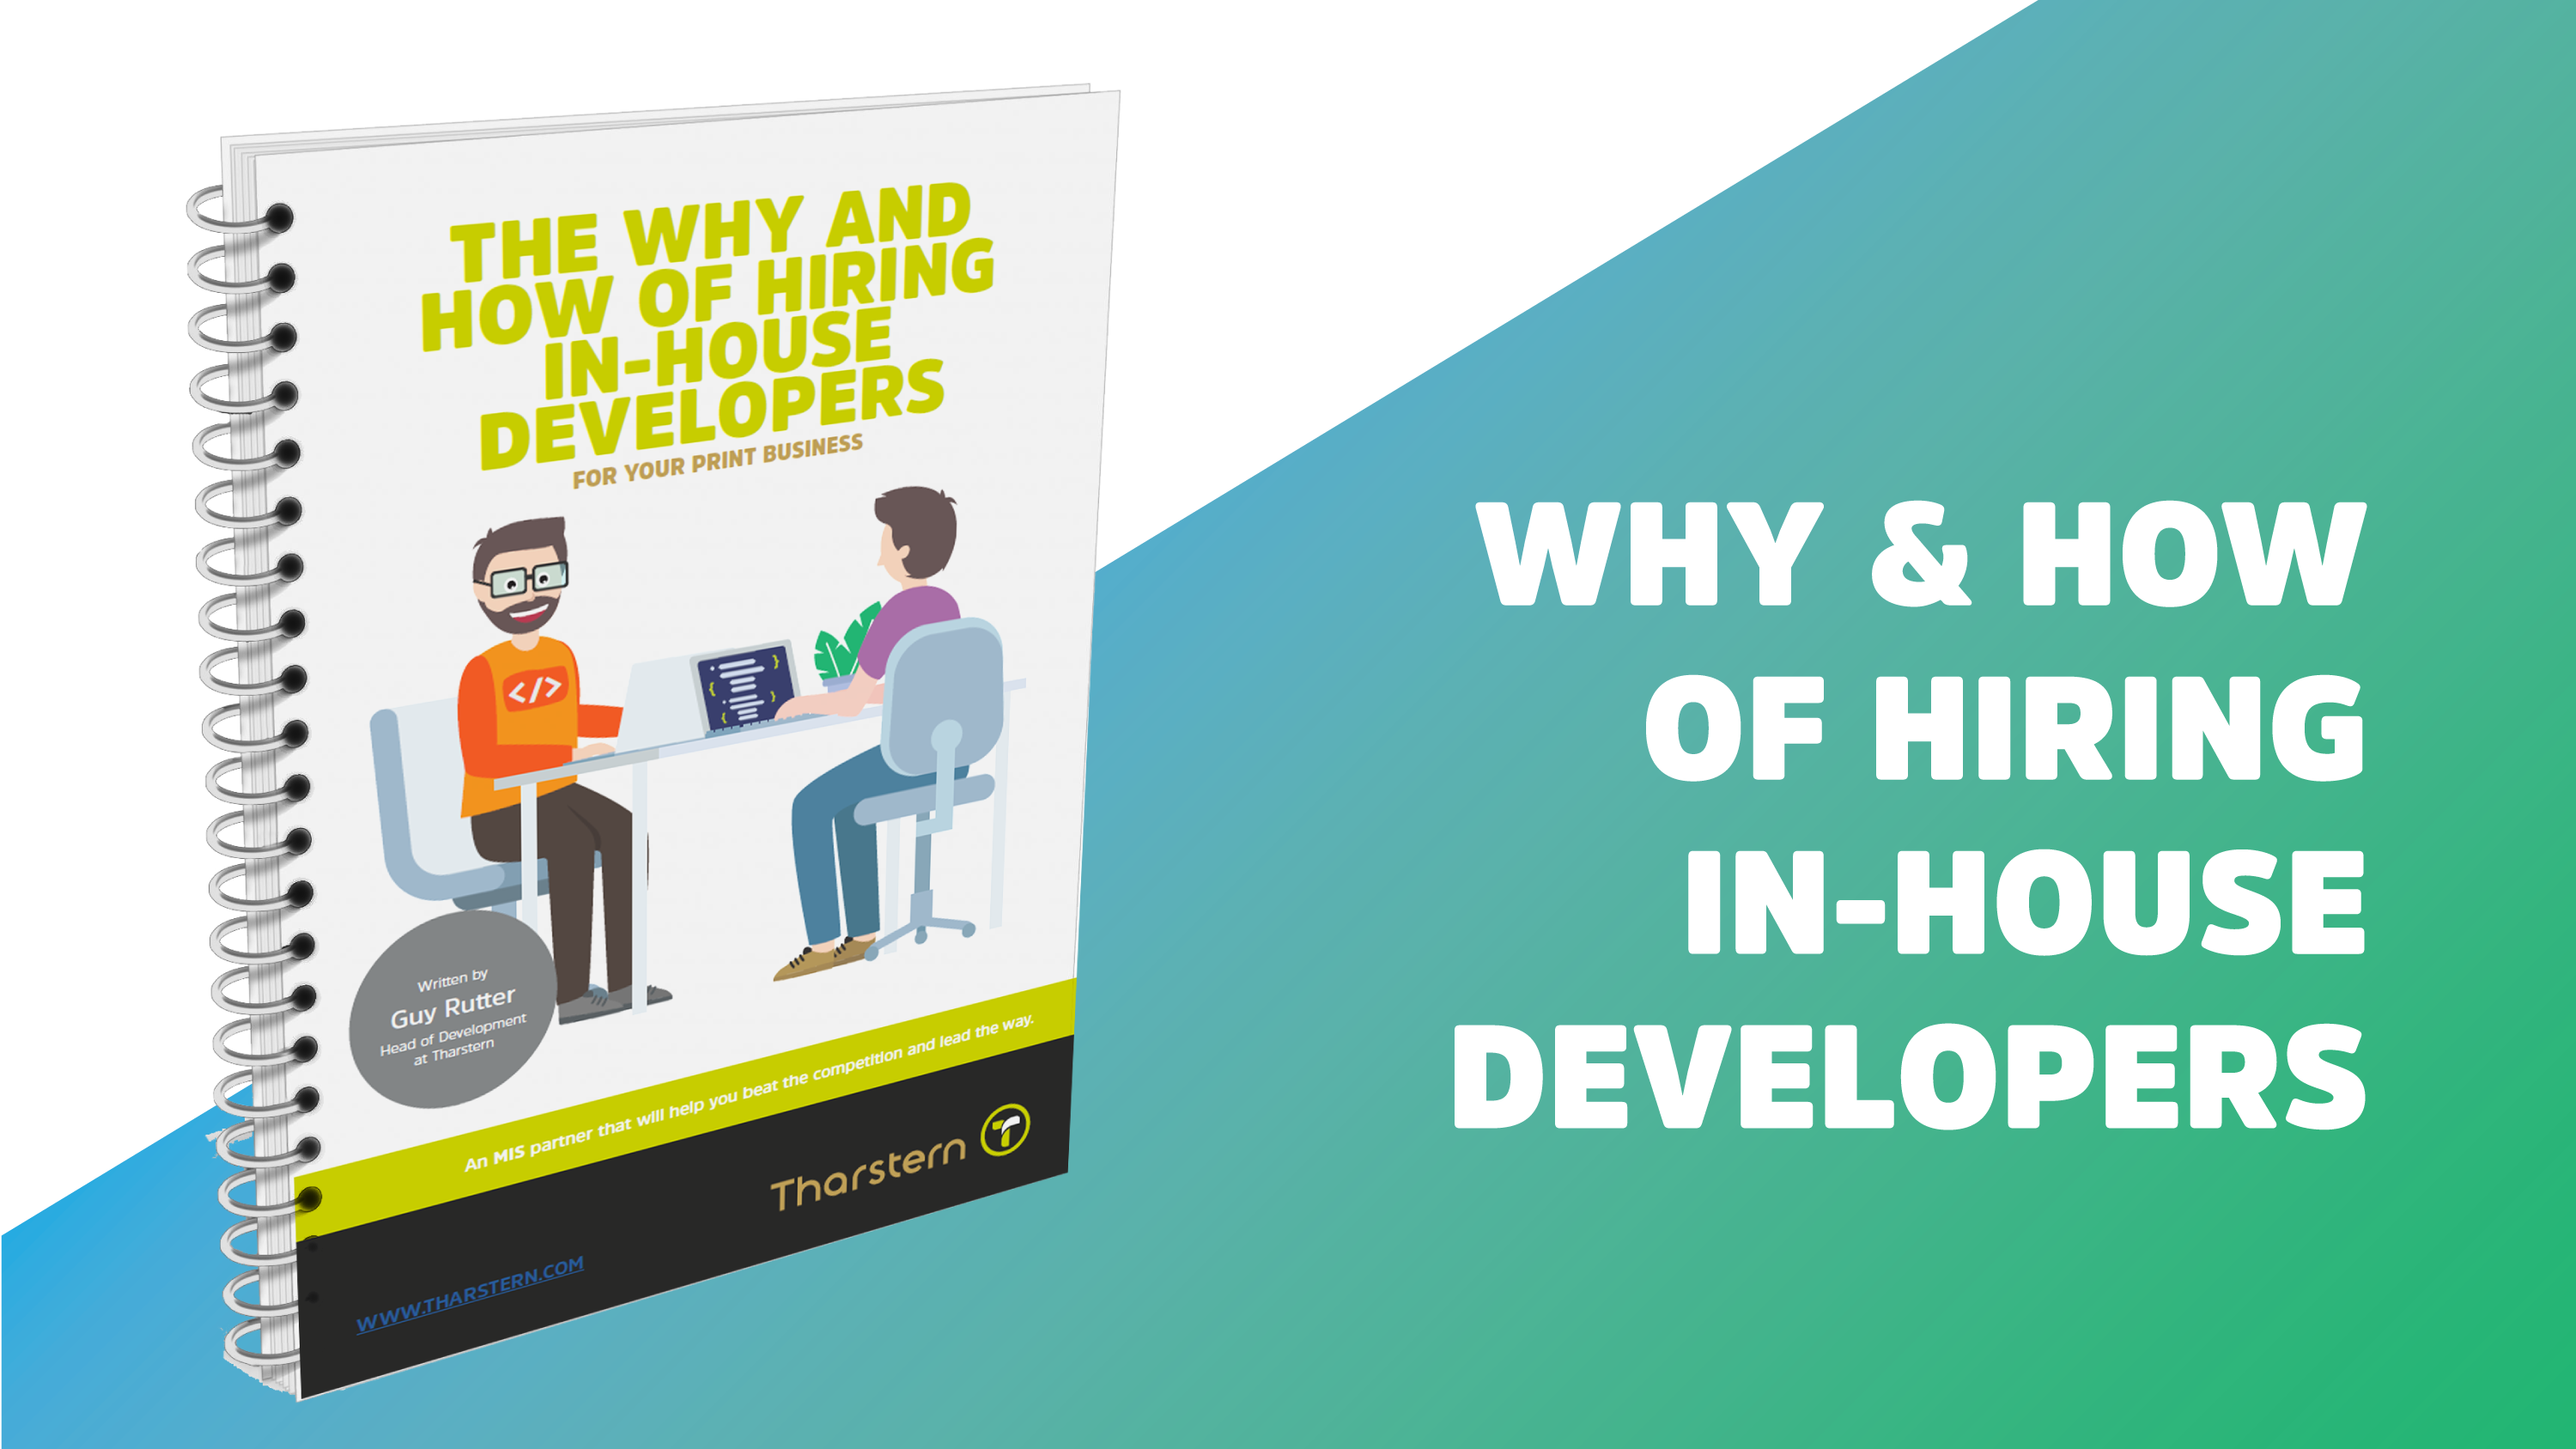 The Why & How of Hiring In-house Developers